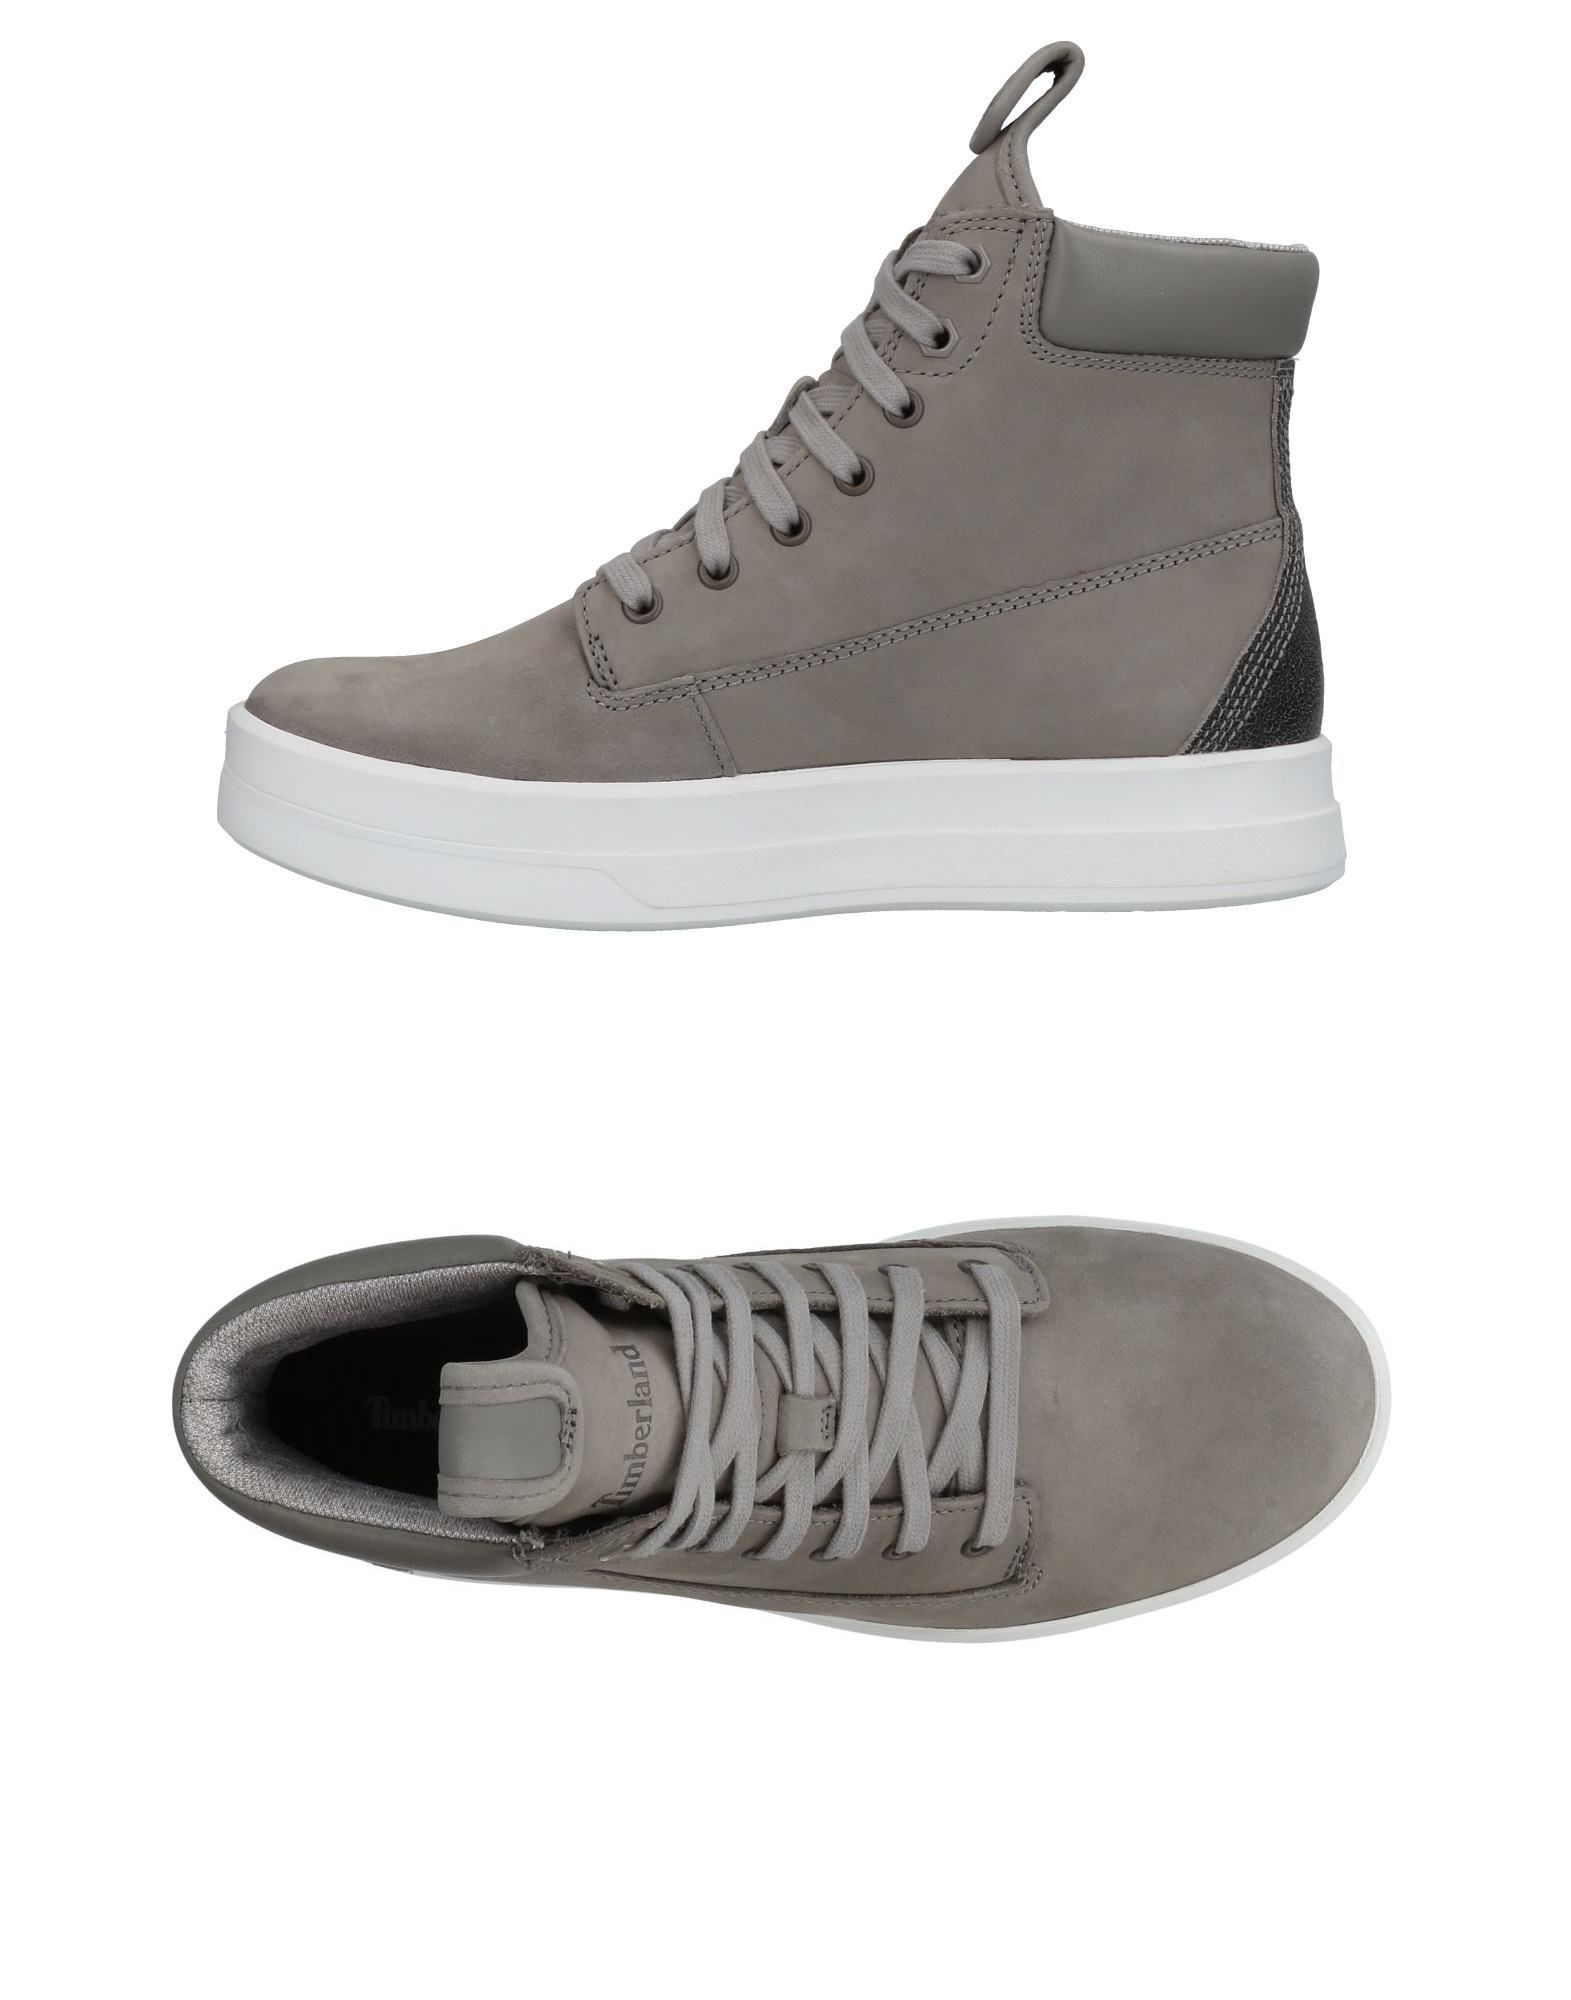 Sneakers Timberland Donna - Acquista online su